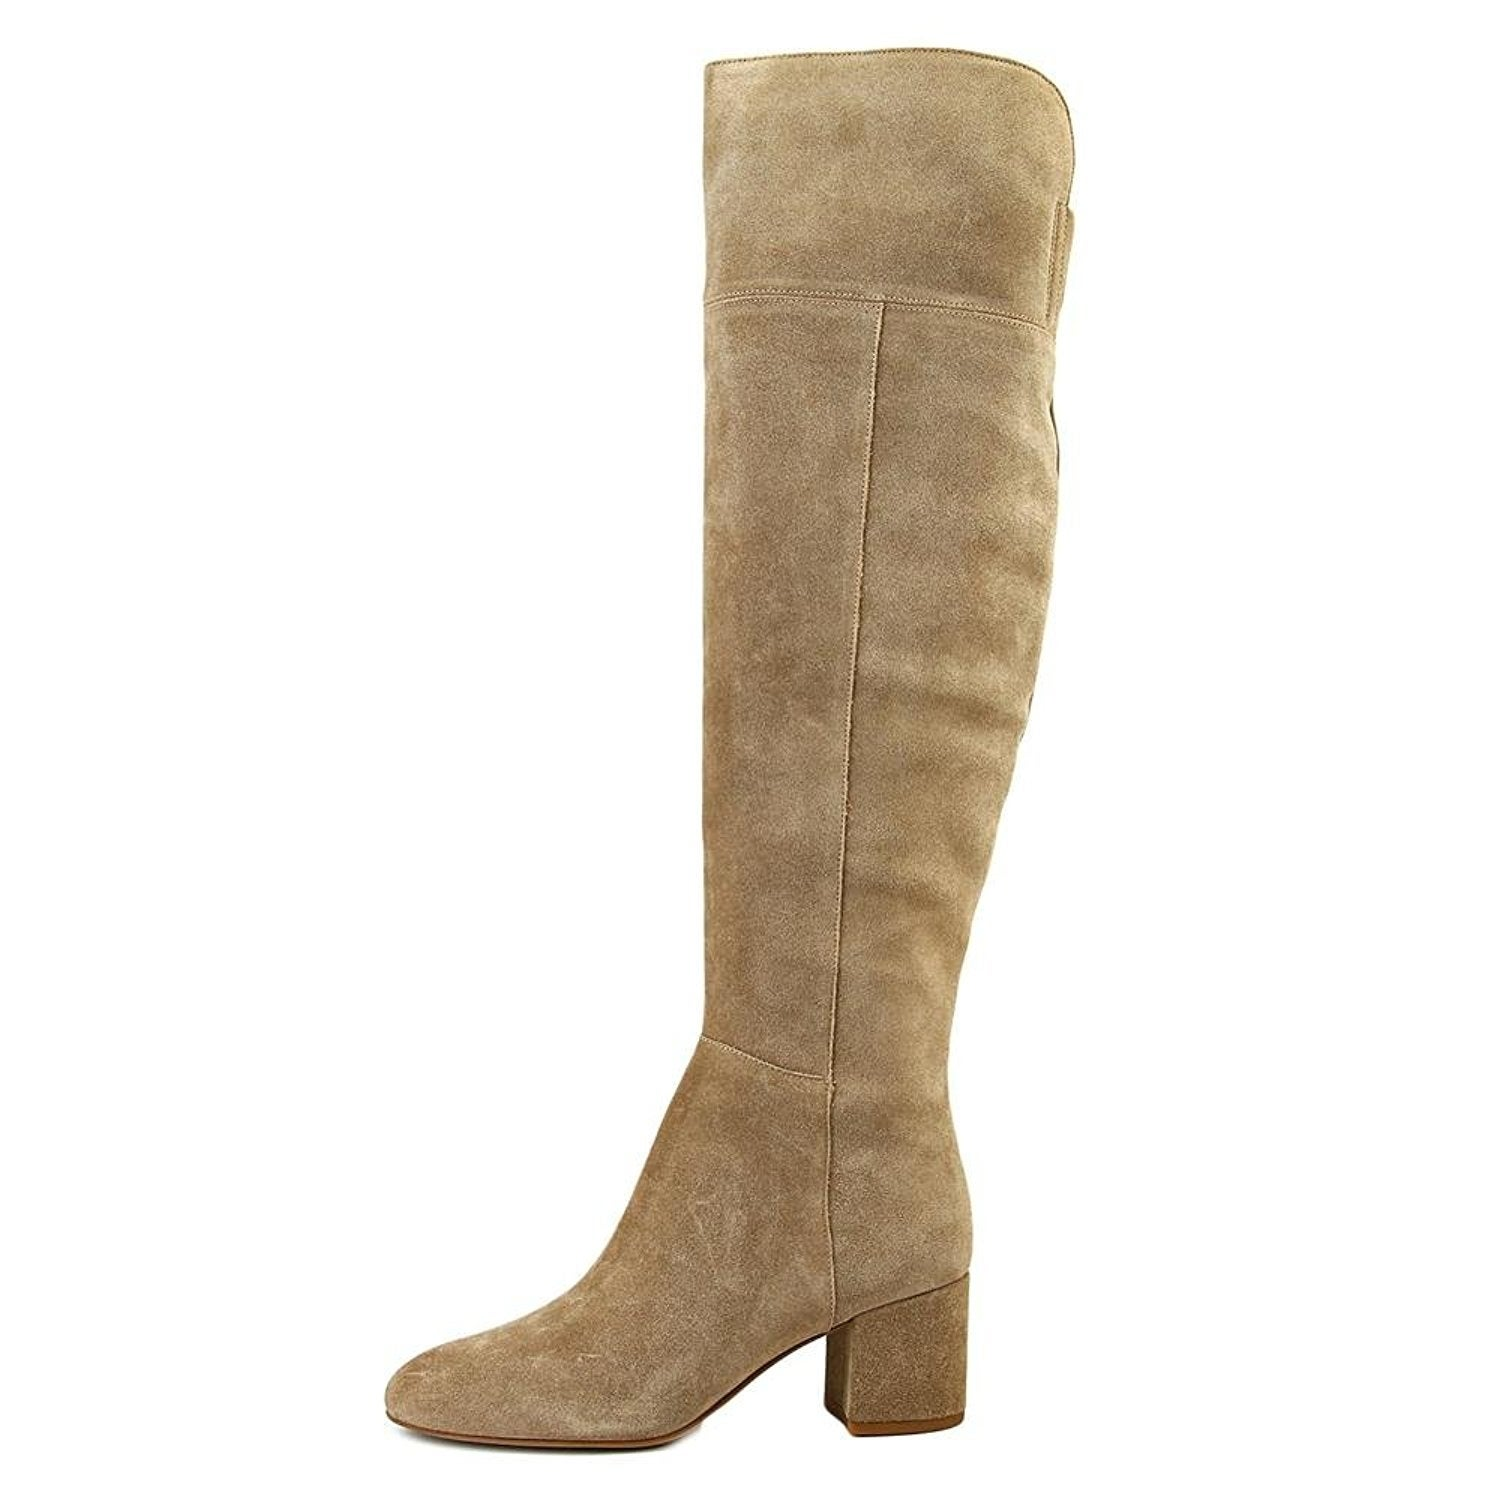 81bedd53d0b Shop Franco Sarto Womens carlisle Leather Closed Toe Ankle Fashion Boots -  Free Shipping Today - Overstock - 16979041